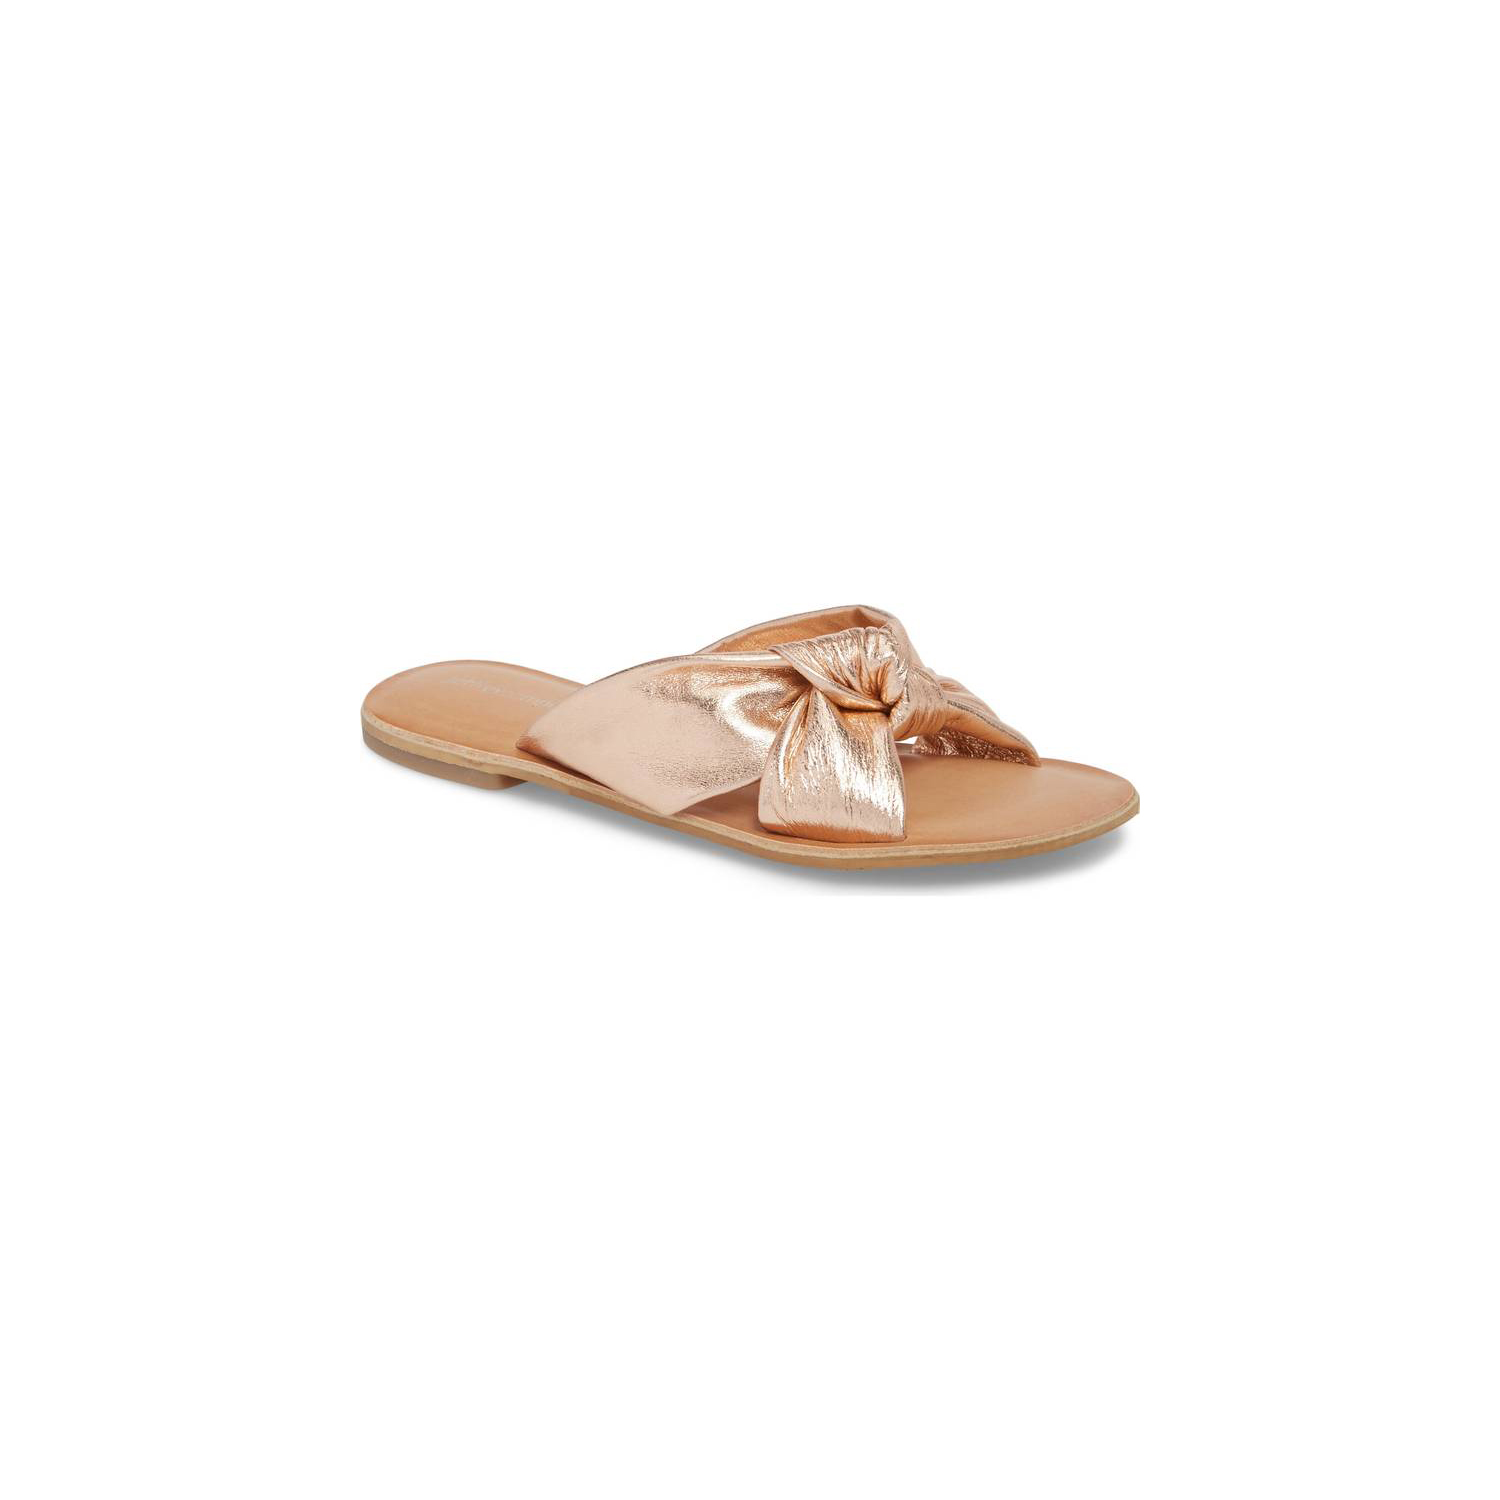 Jeffrey Cambell Women's Sandals for Nordstrom's Memorial Day Sales 2018